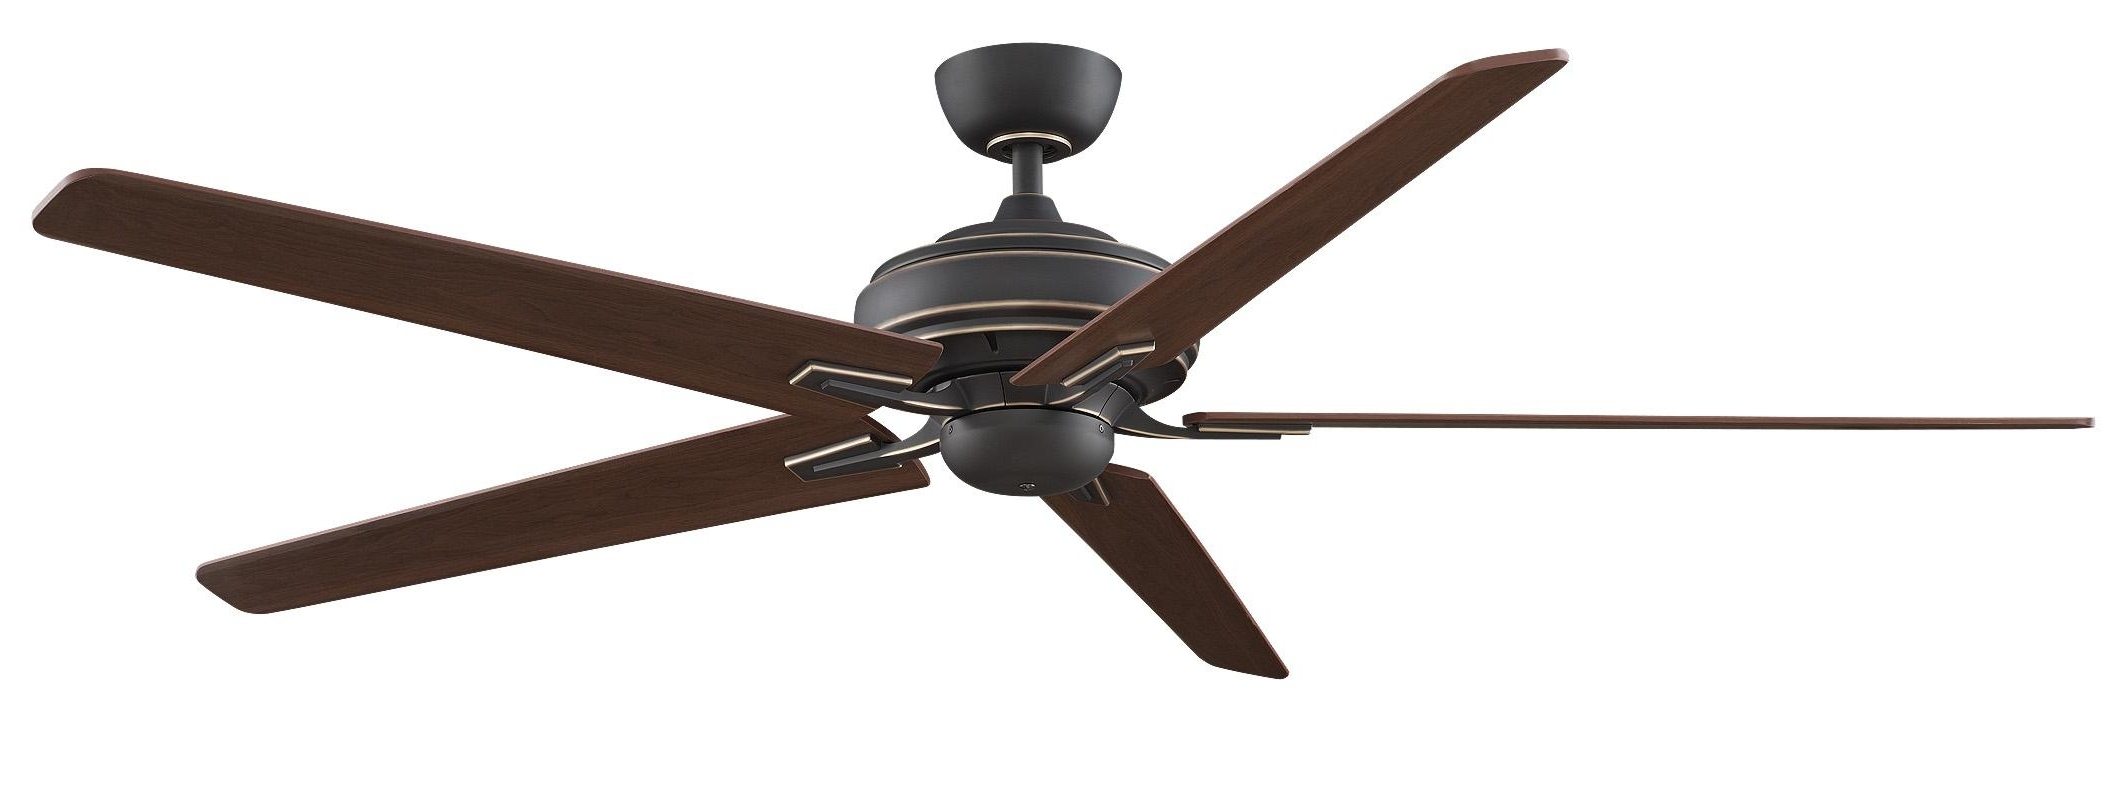 Inch Outdoor Ceiling Fan With 60 Ceiling Fan With Light Pertaining To Current 60 Inch Outdoor Ceiling Fans With Lights (Gallery 1 of 20)